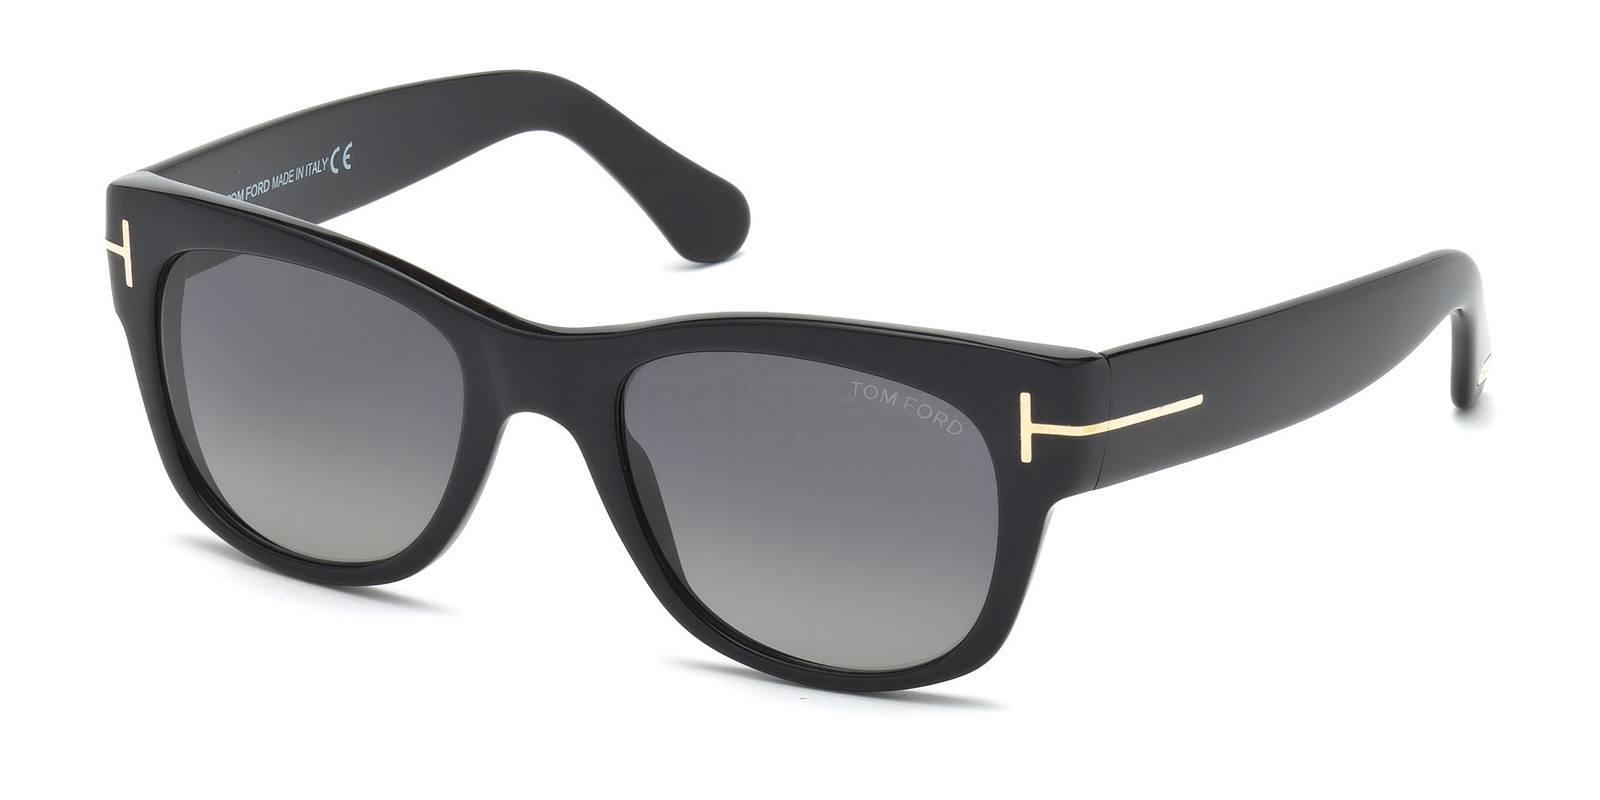 01D FT0058 Cary Sunglasses, Tom Ford